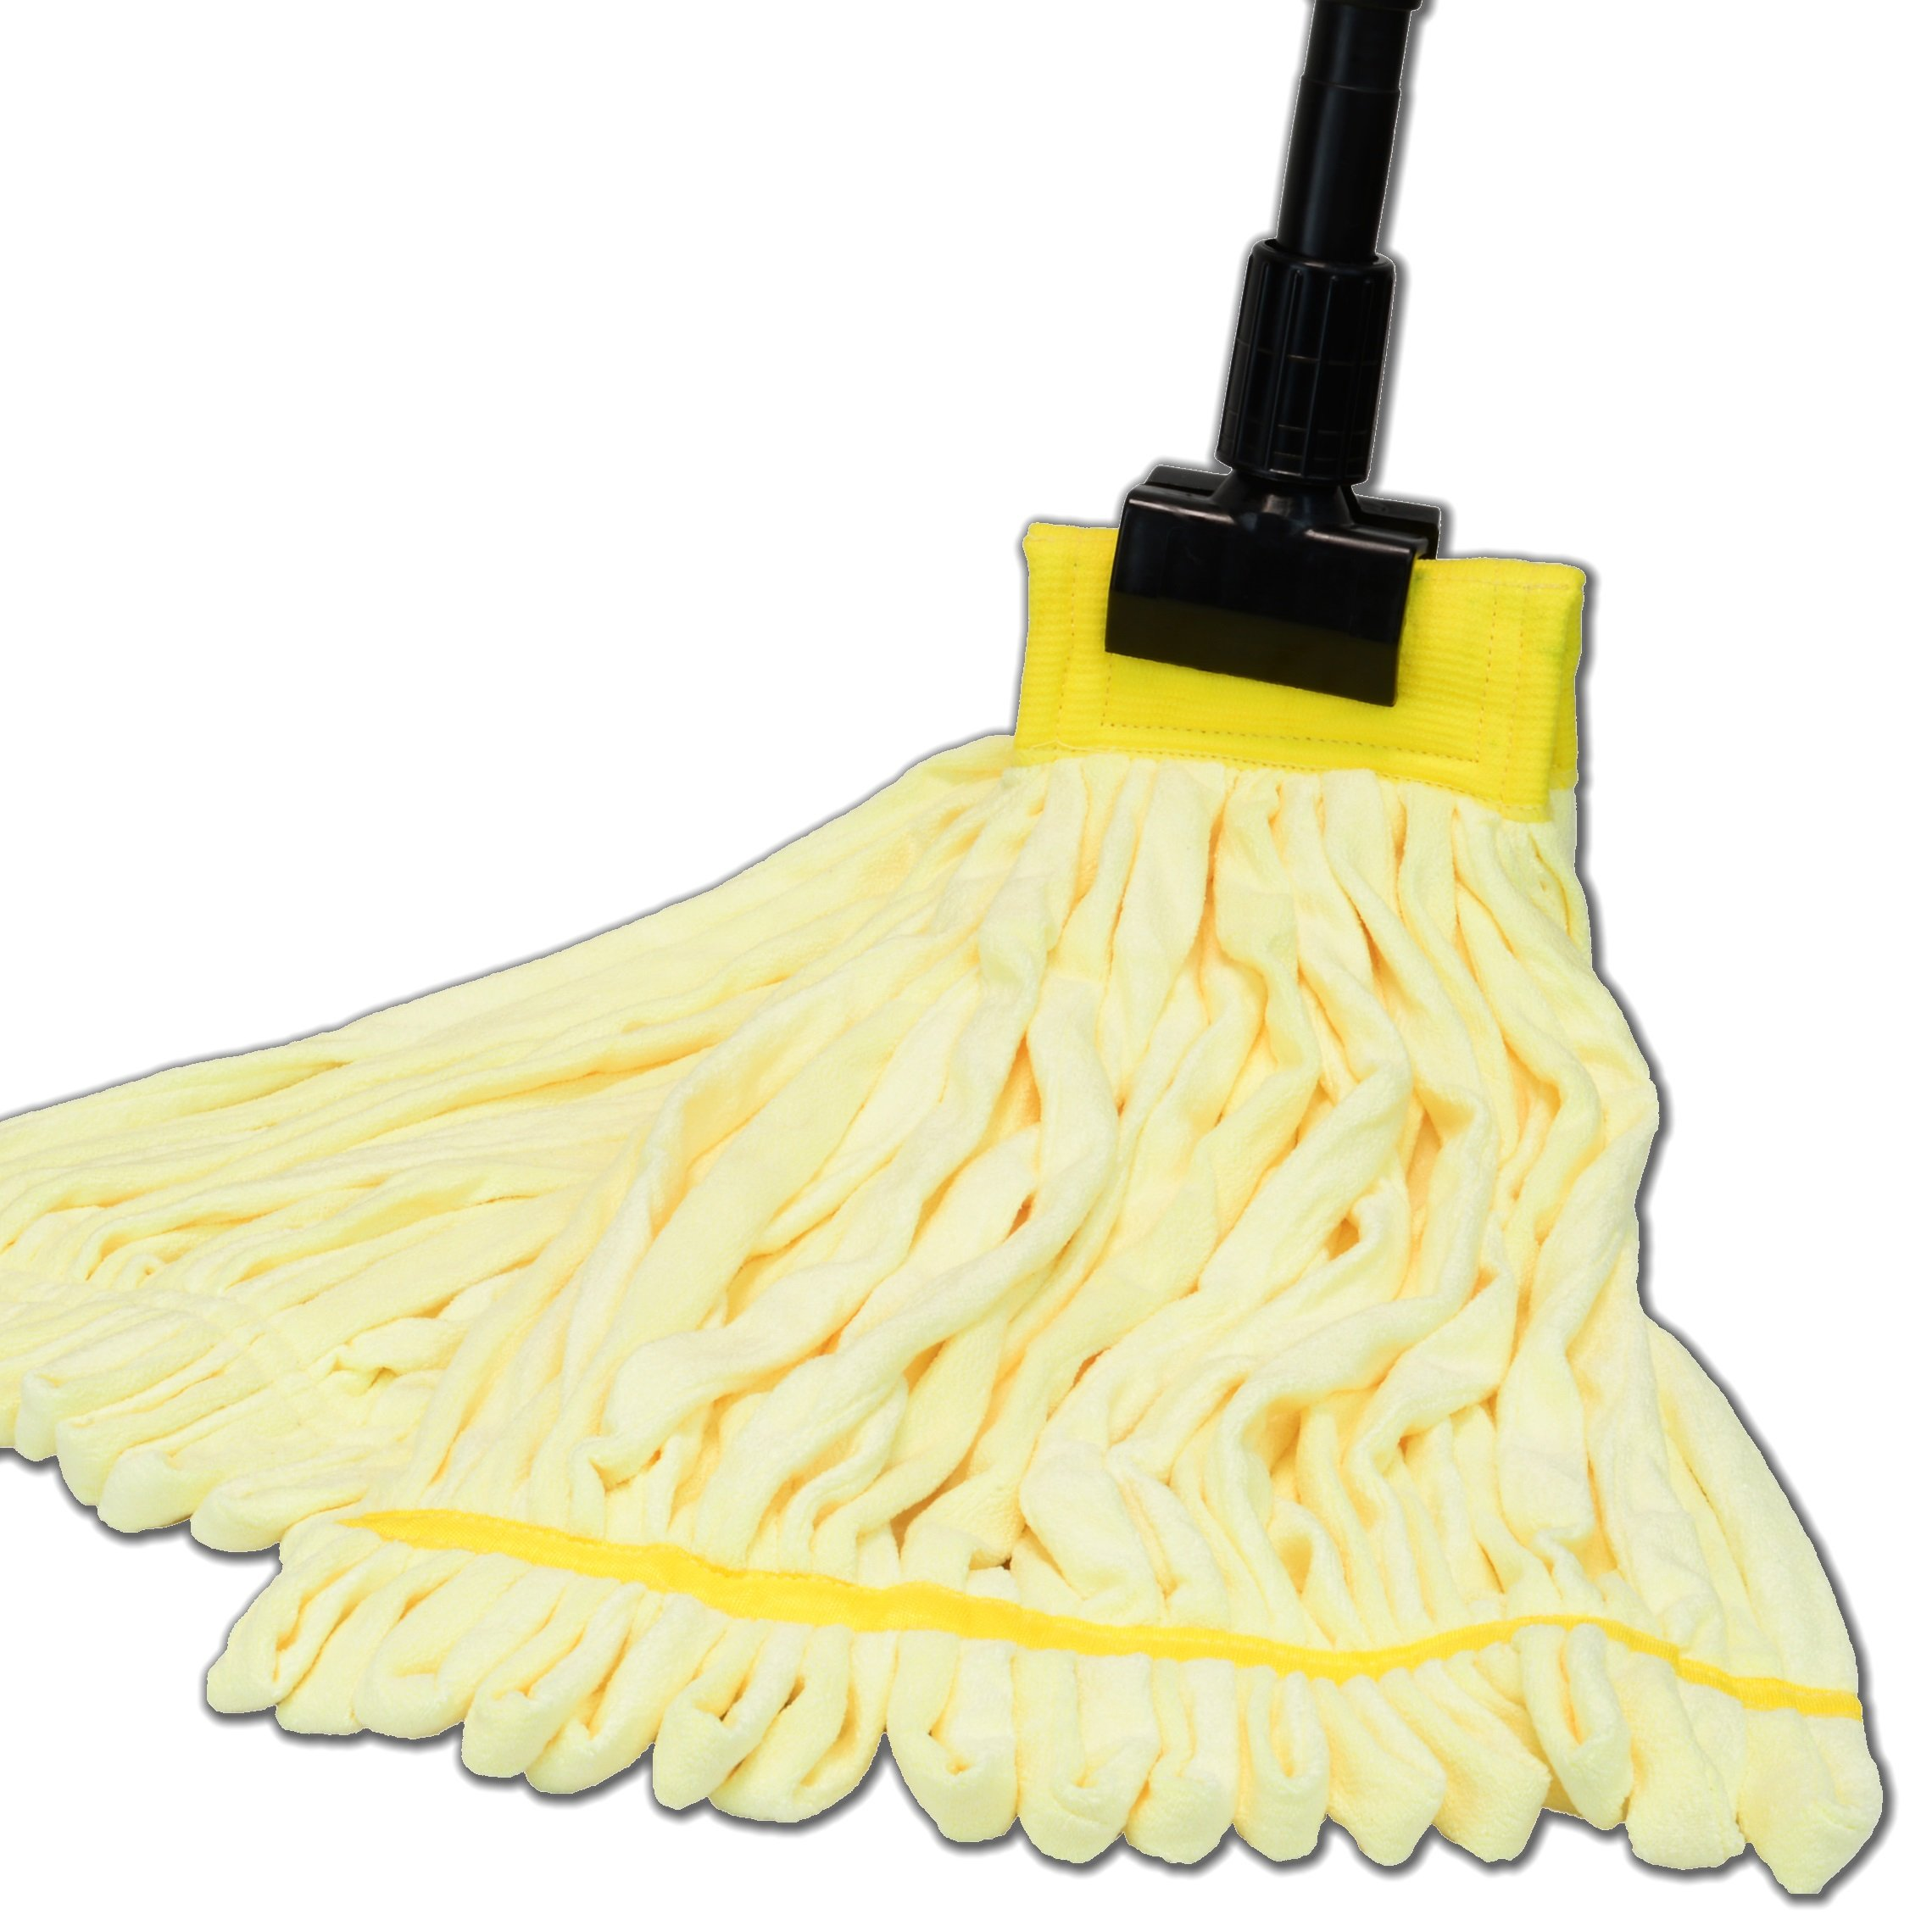 Large Microfiber Tube Mop with Stainless Steel Handle | Industrial Wet Mop | Absorbent and Durable with Great Cleaning Power (Yellow)